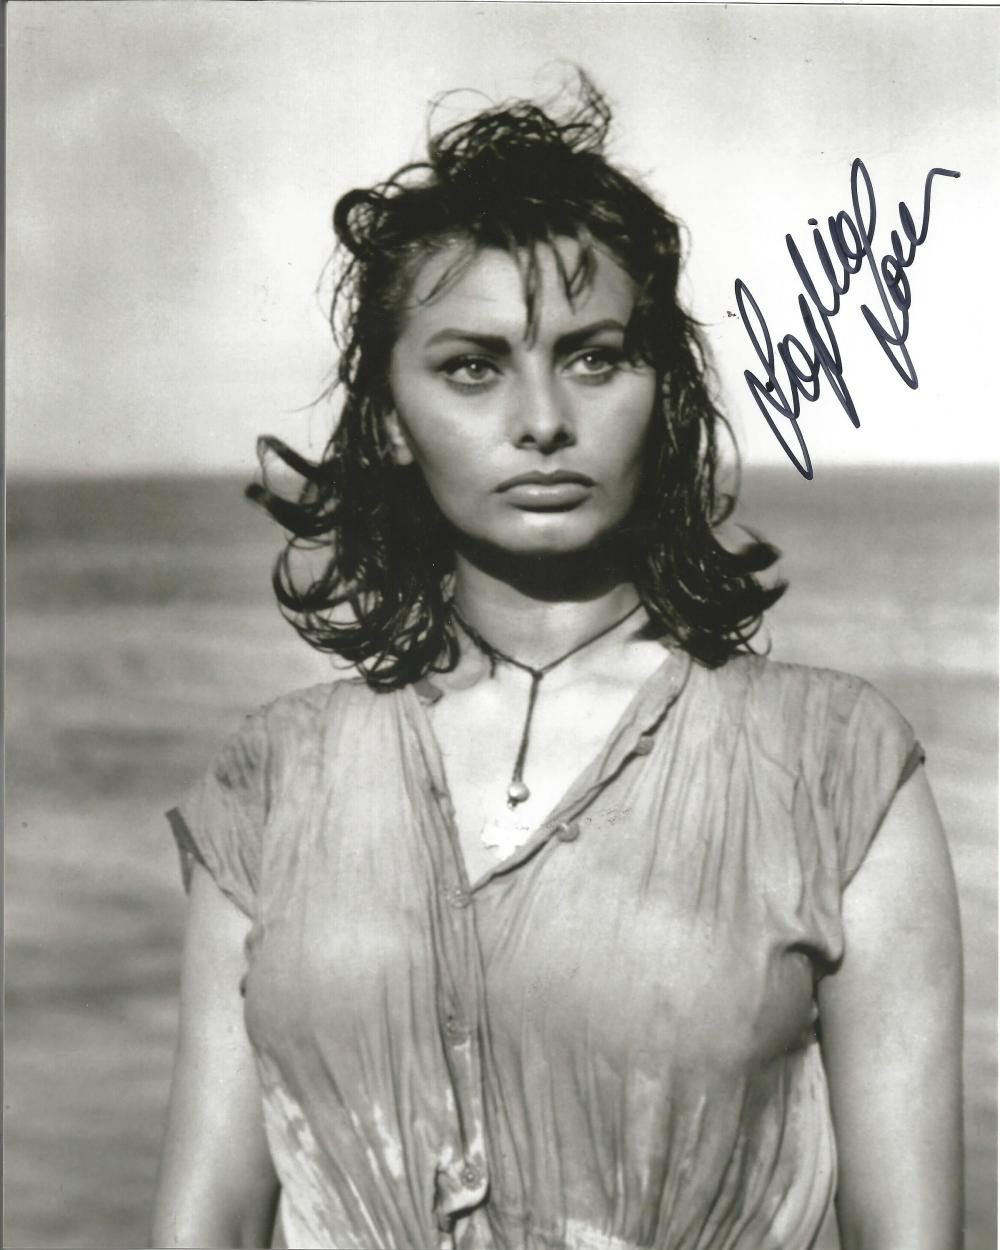 Sophia Loren signed 10x8 b/w photo one slight ding on photo. Good Condition. All signed pieces